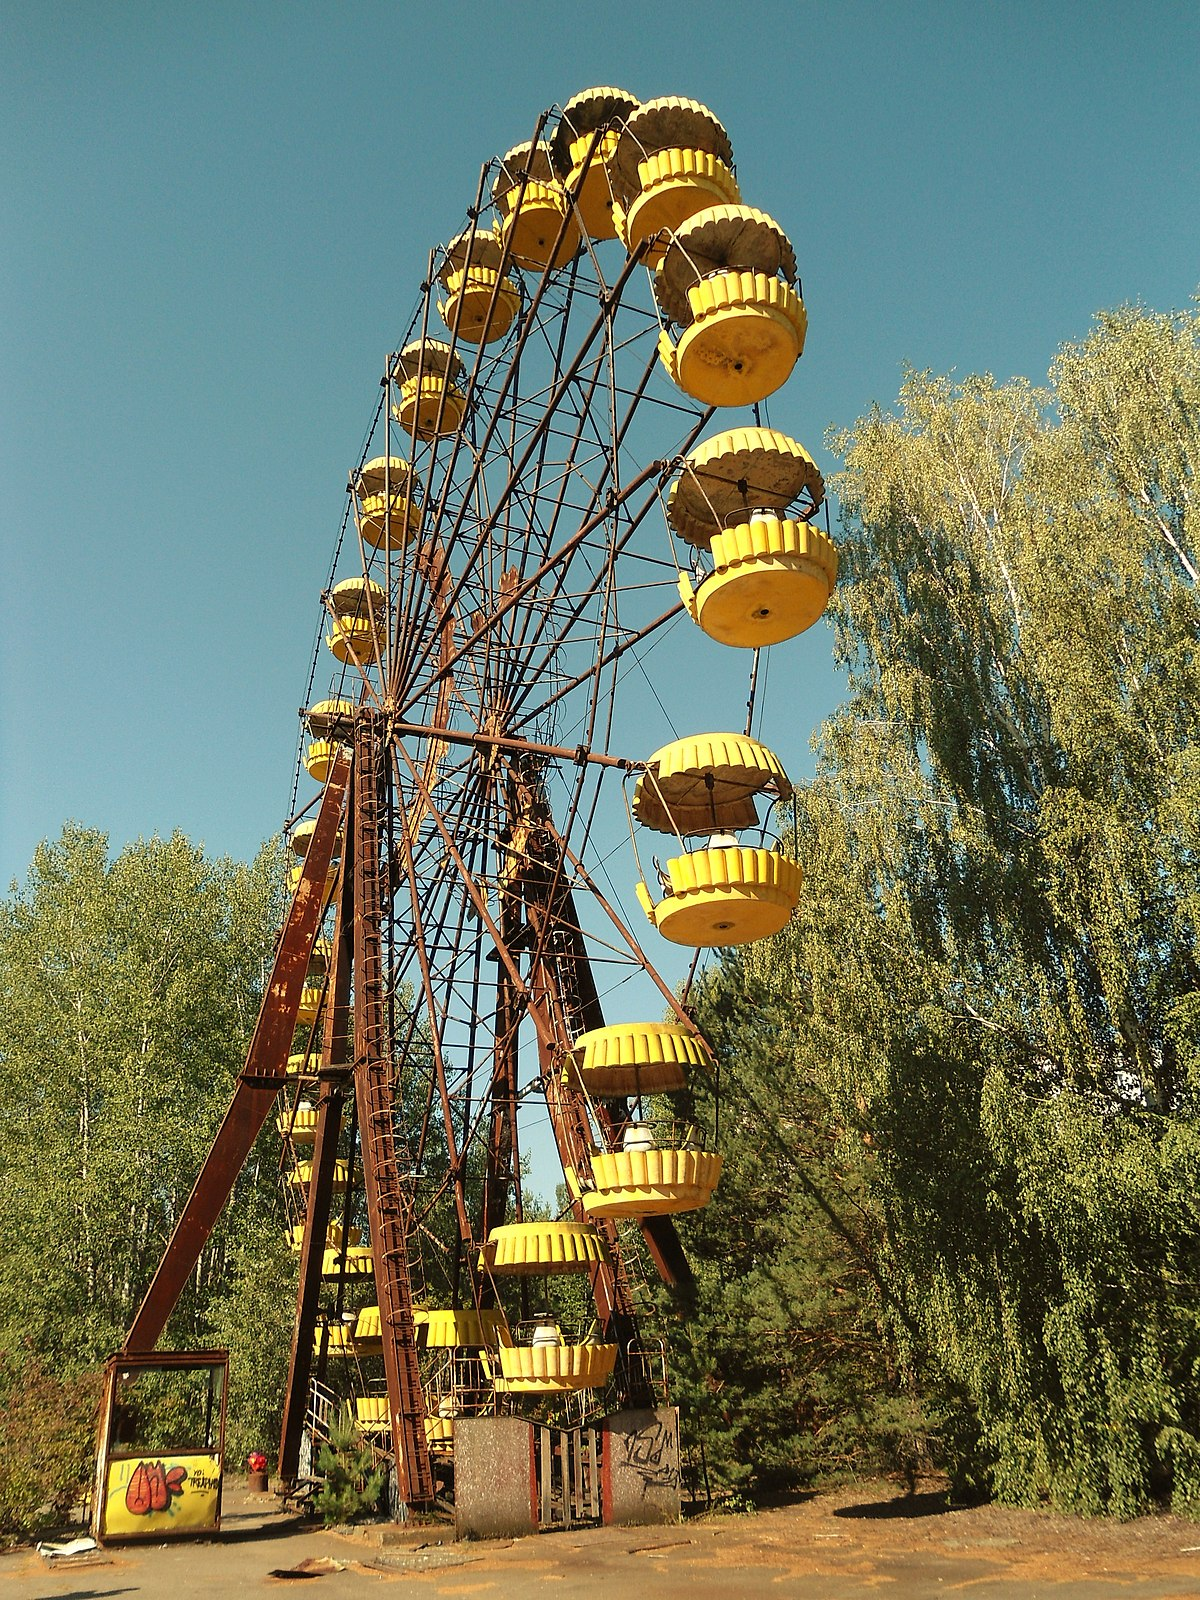 The Wheel Of Fortune Tarot Card Meaning In Readings The: Pripyat Amusement Park